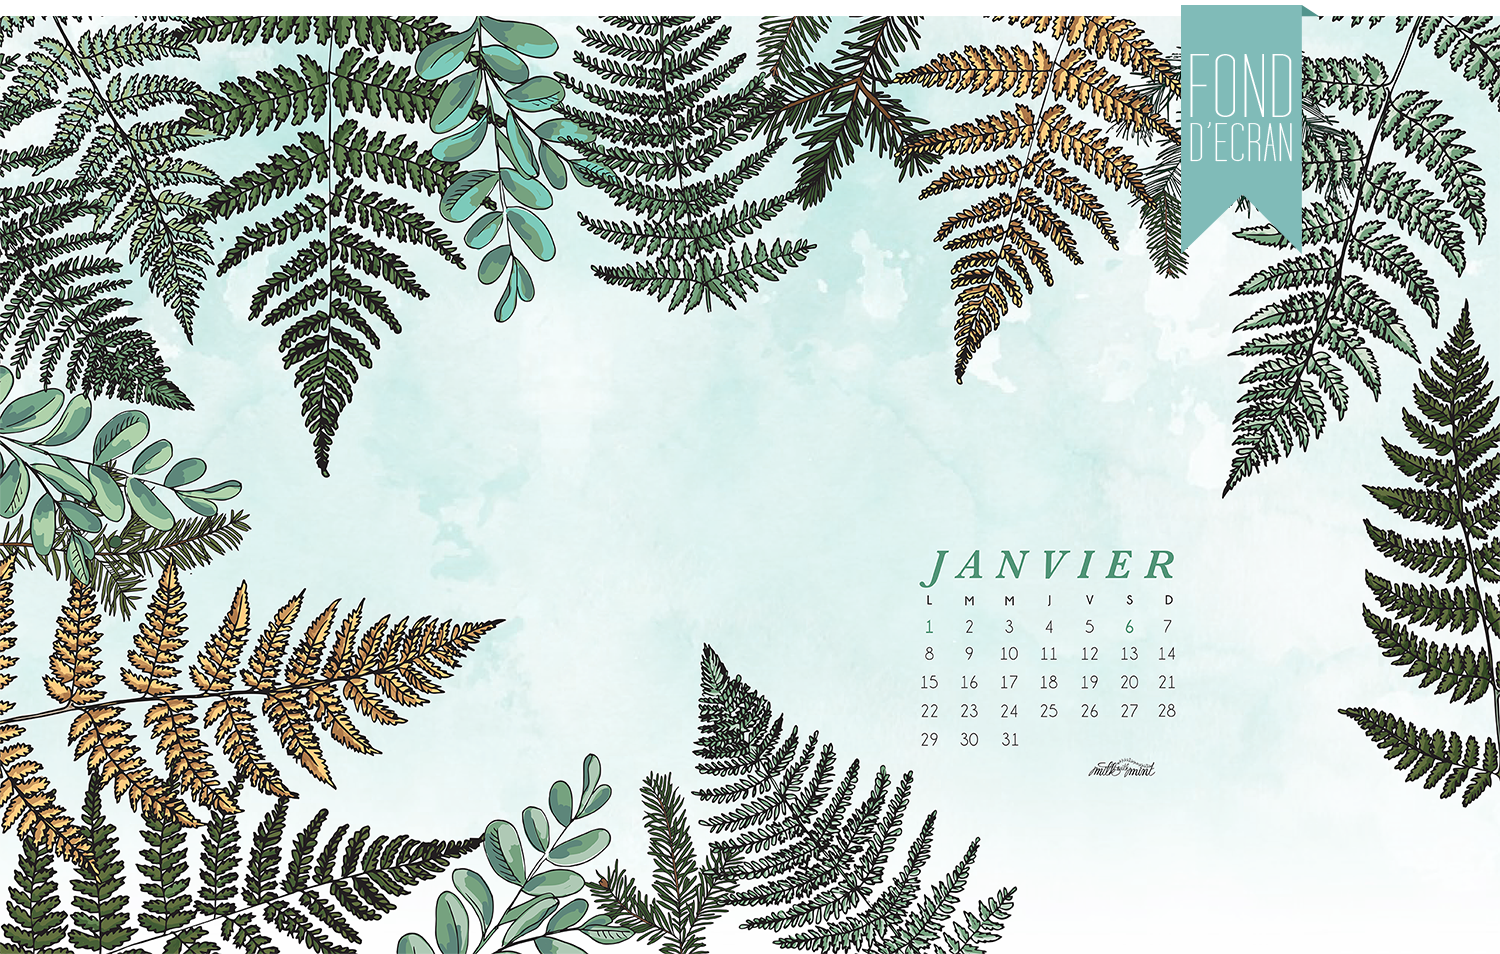 Calendrier de janvier 2018 milk with mint for Ecran photo 2018